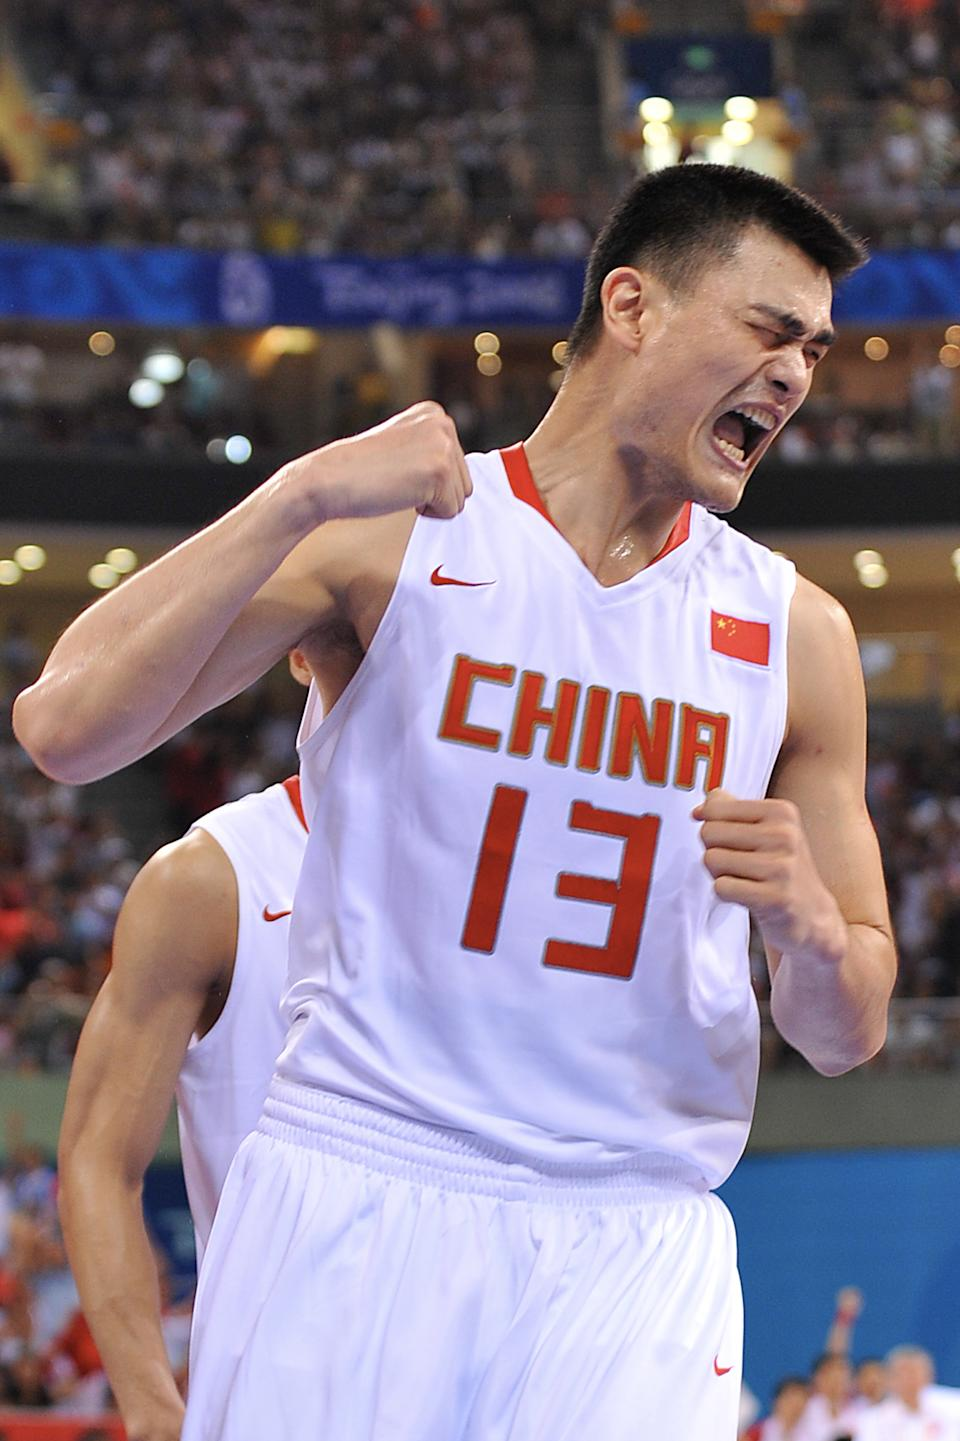 BEIJING - AUGUST 12: Yao Ming #13 of China celebrates against Spain during day 4 of the men's preliminary basketball game at the 2008 Beijing Olympic Games at the Beijing Olympic Basketball gymnasium on August 12, 2008 in Beijing, China. NOTE TO USER: User expressly acknowledges and agrees that, by downloading and/or using this Photograph, user is consenting to the terms and conditions of the Getty Images License Agreement. Mandatory Copyright Notice: Copyright 2008 NBAE (Photo by Garrett Ellwood/NBAE via Getty Images)